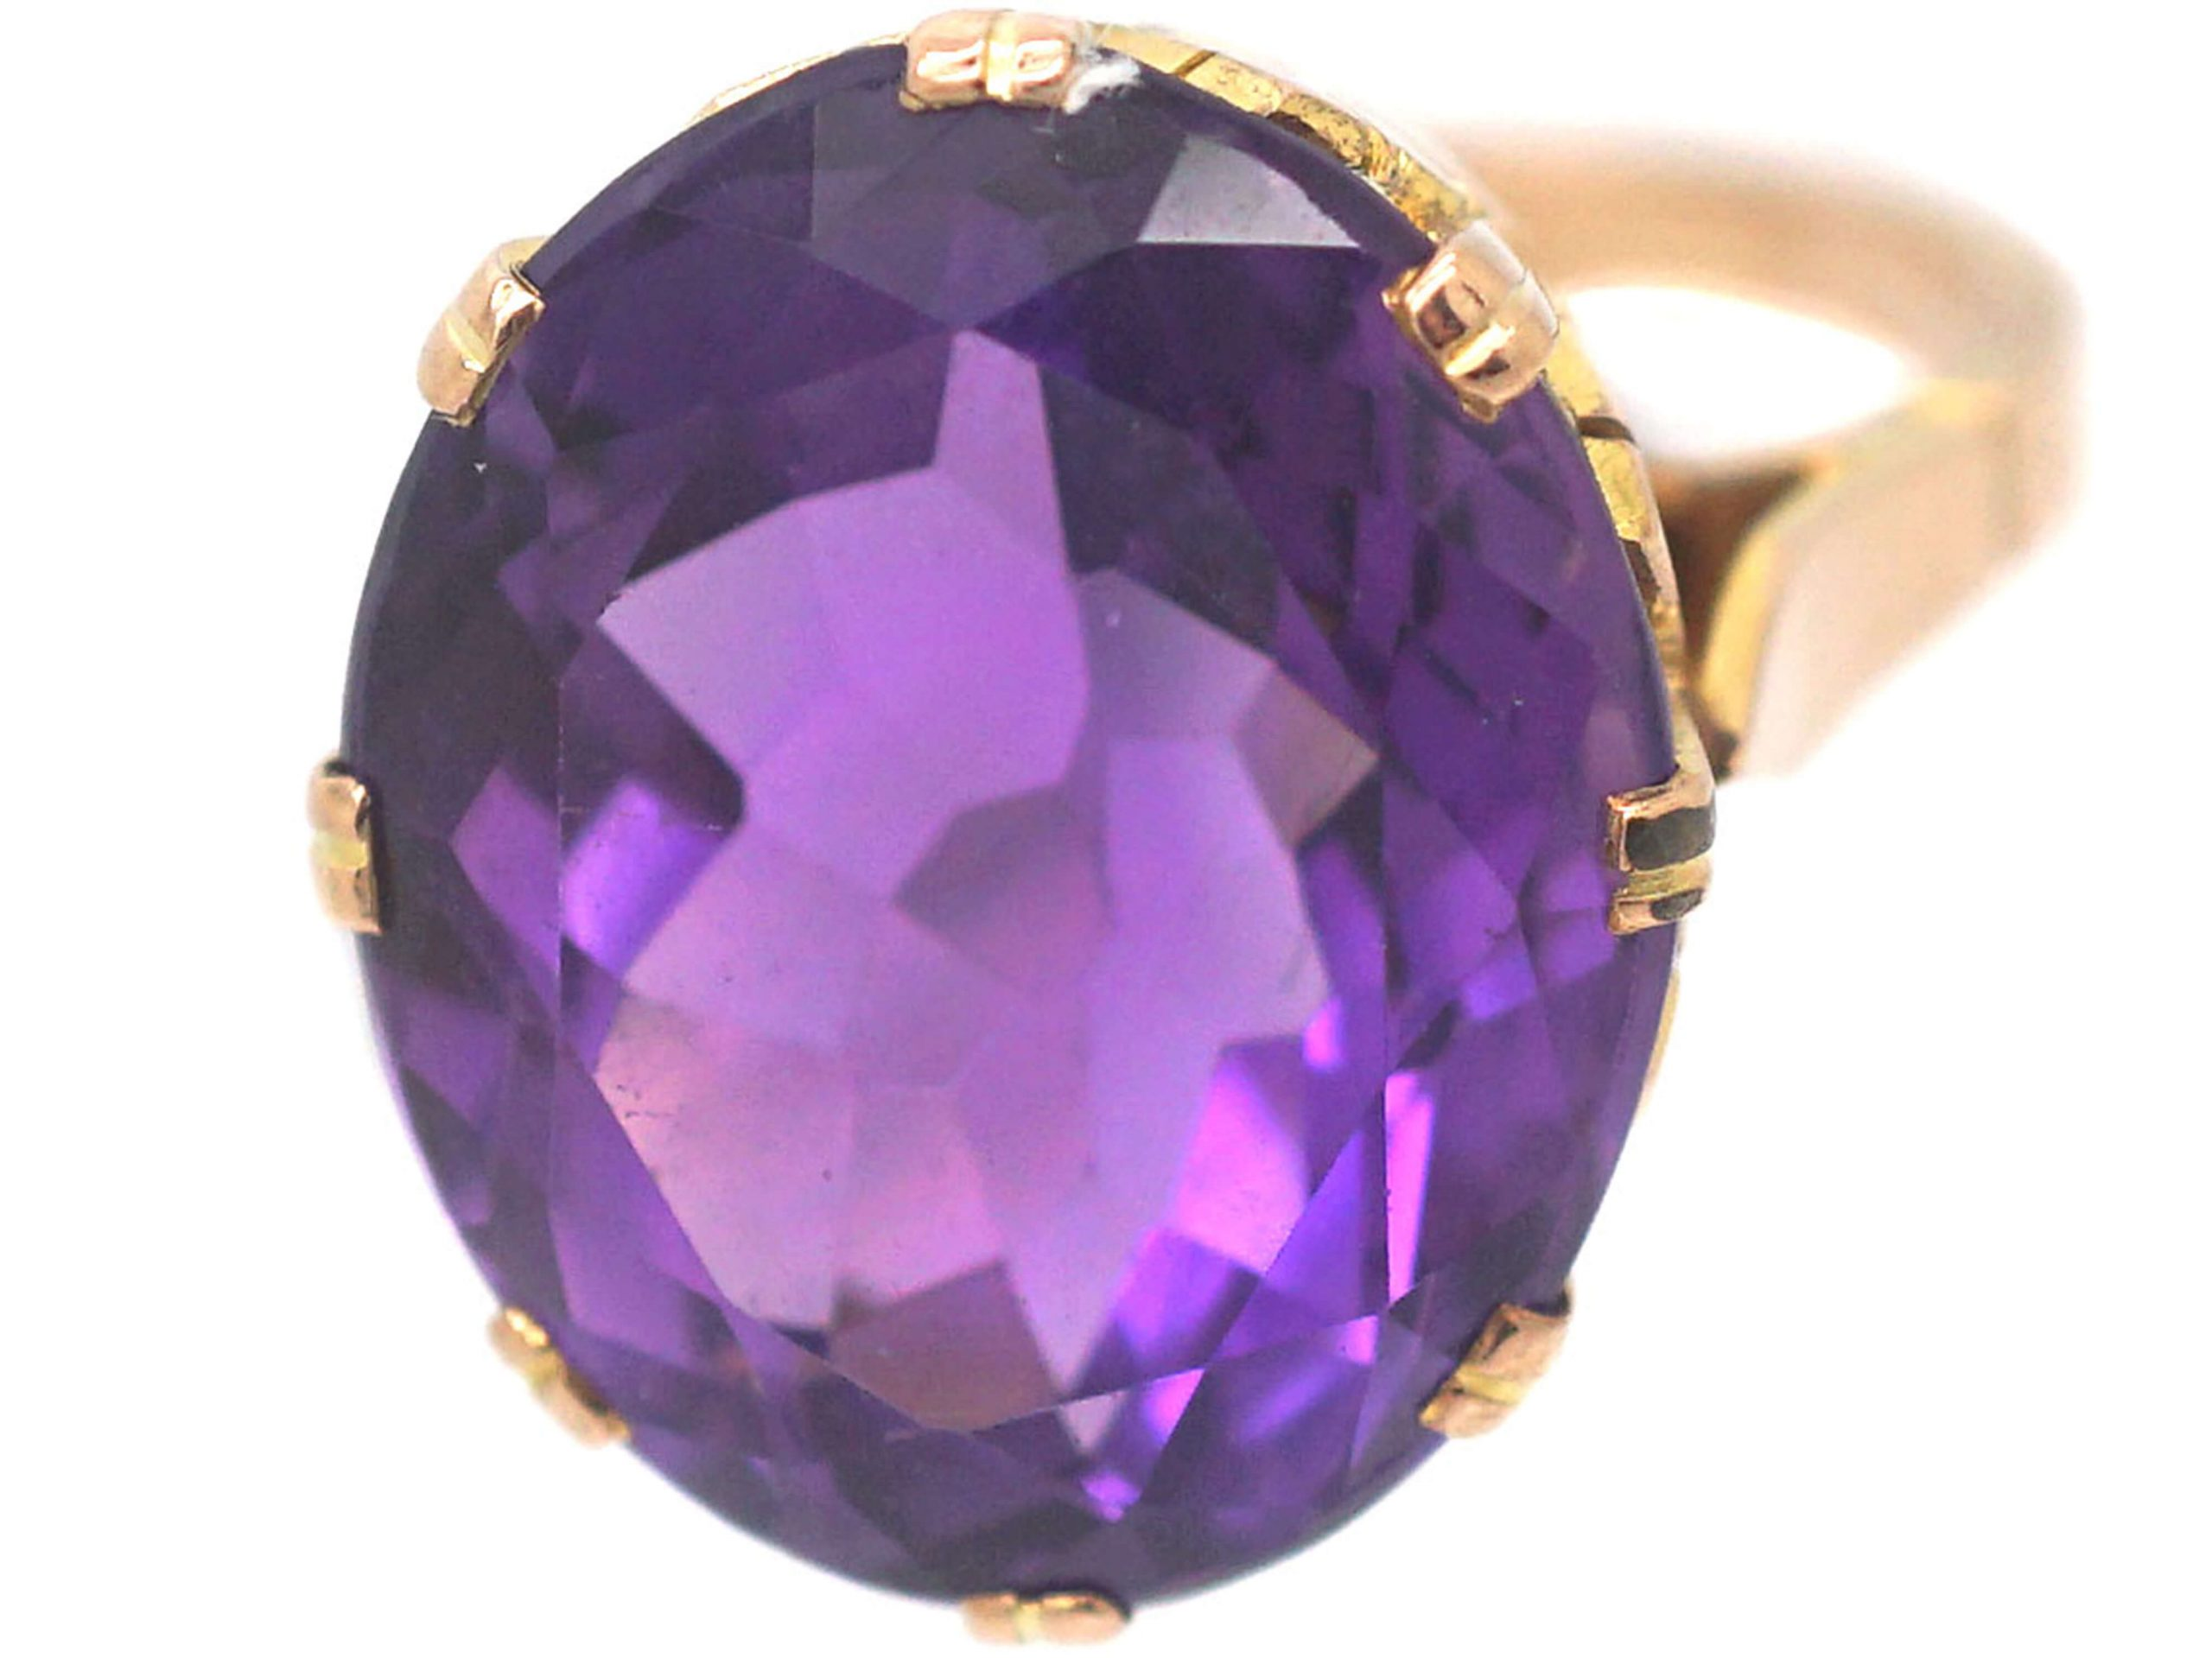 Retro 9ct Gold & Large Amethyst Ring with Ornate Gallery